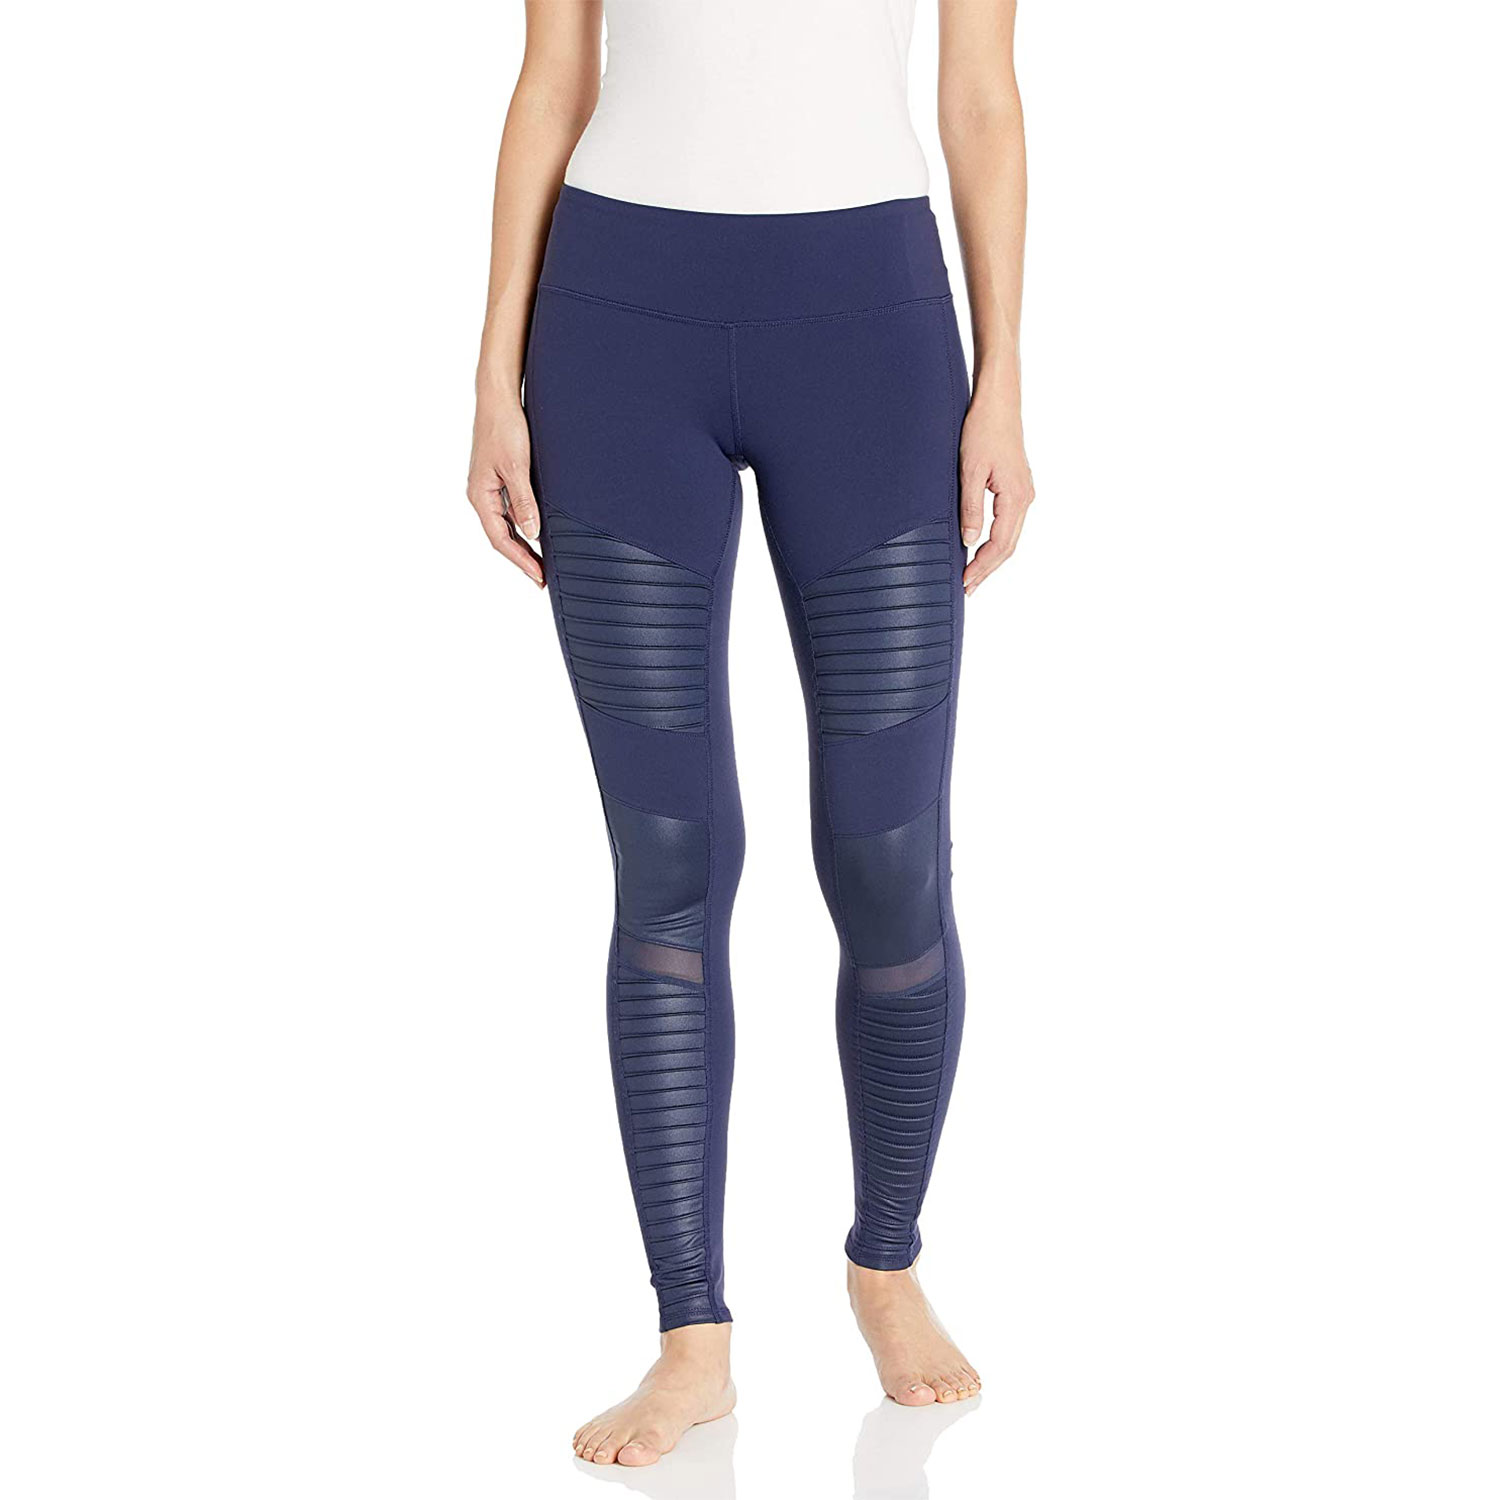 alo yoga women's moto leggings